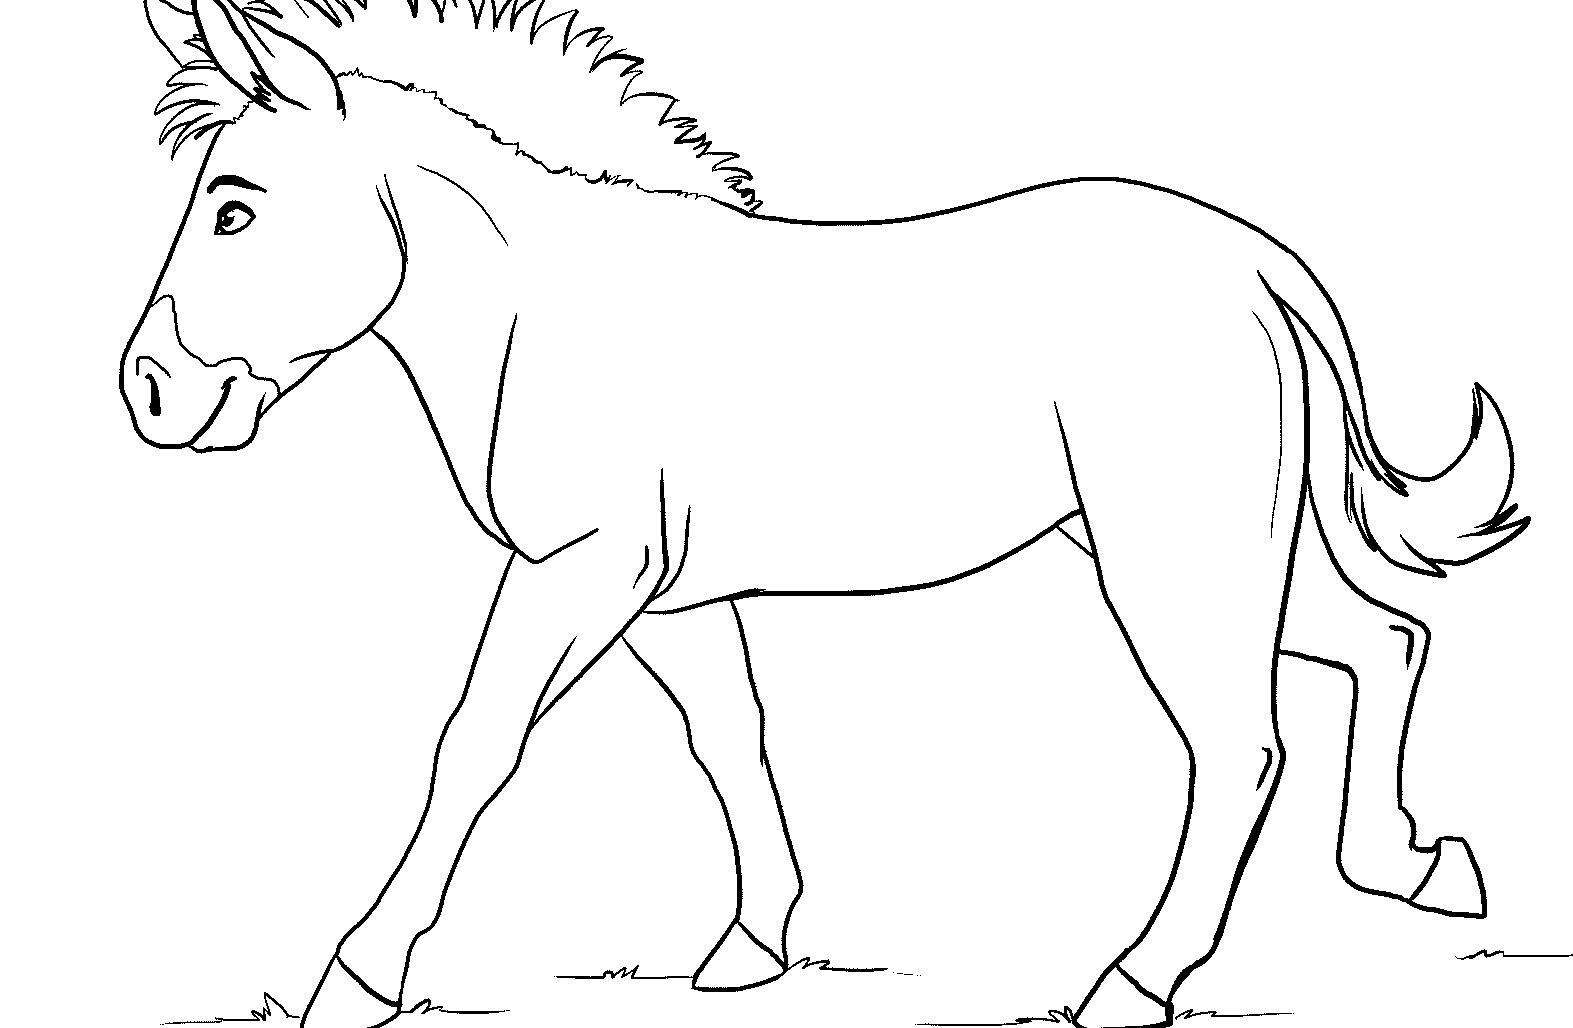 zebra without stripes sketch coloring page